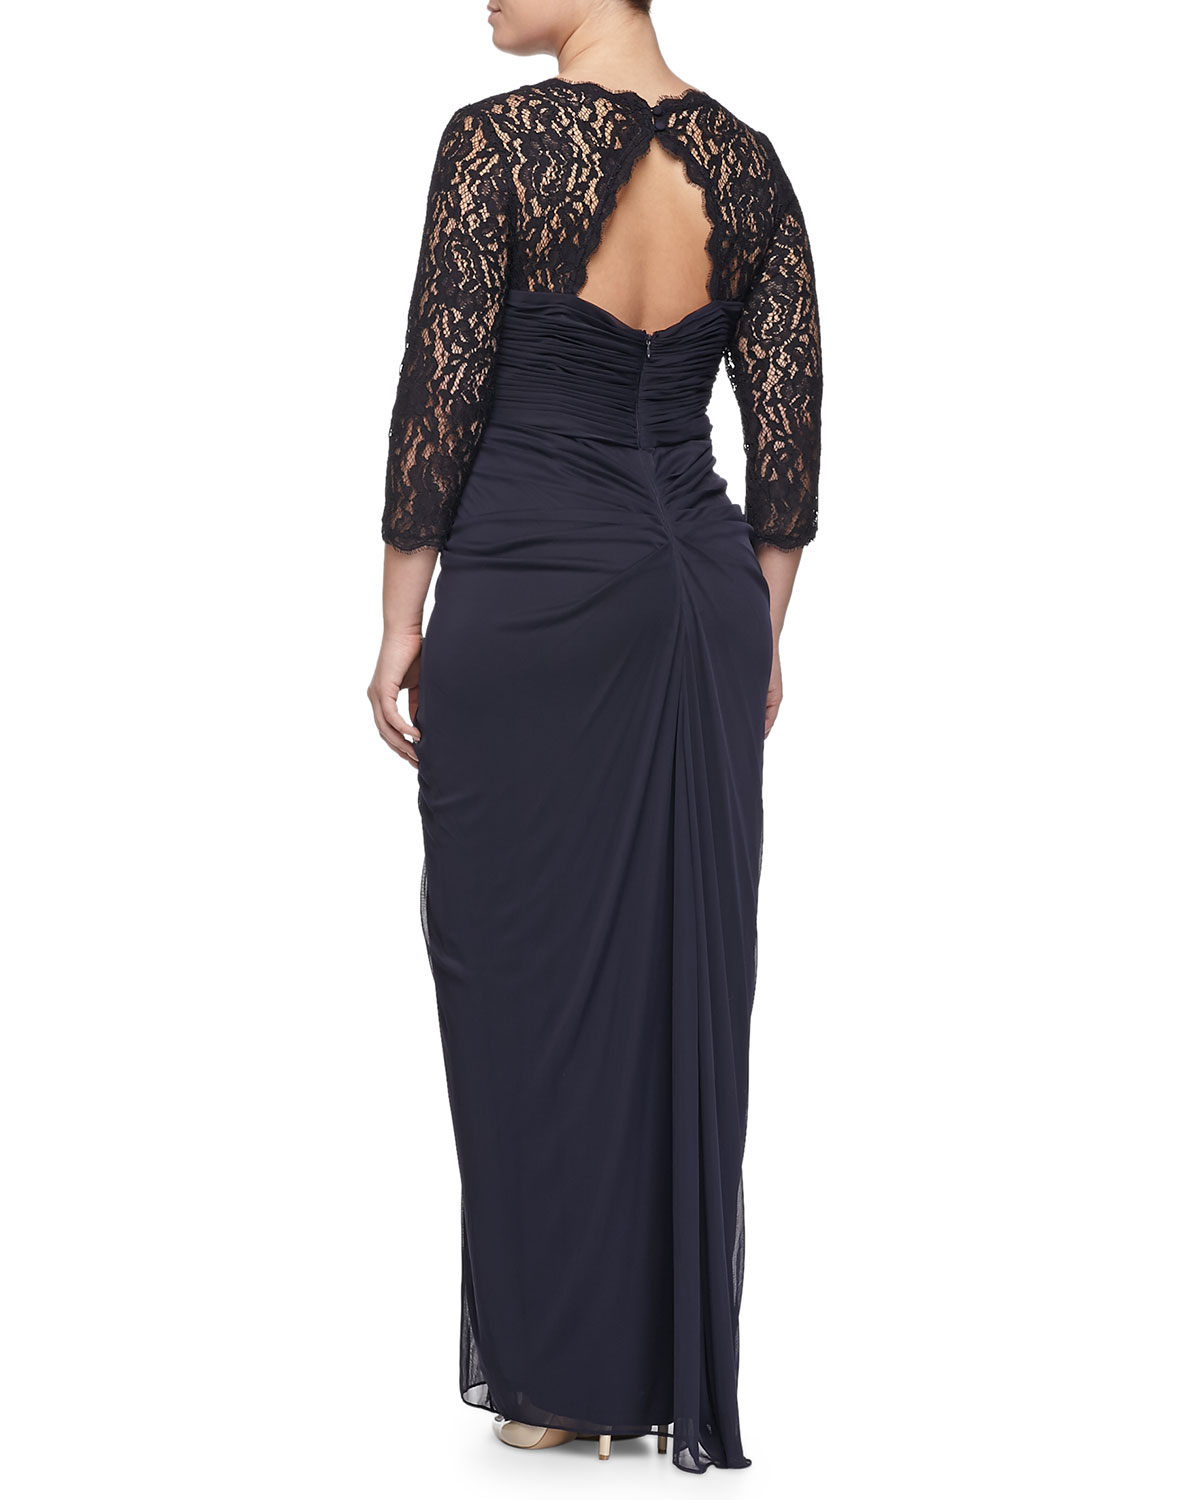 Lyst - Adrianna Papell Lace Raglan Draped Gown, Ink in Blue